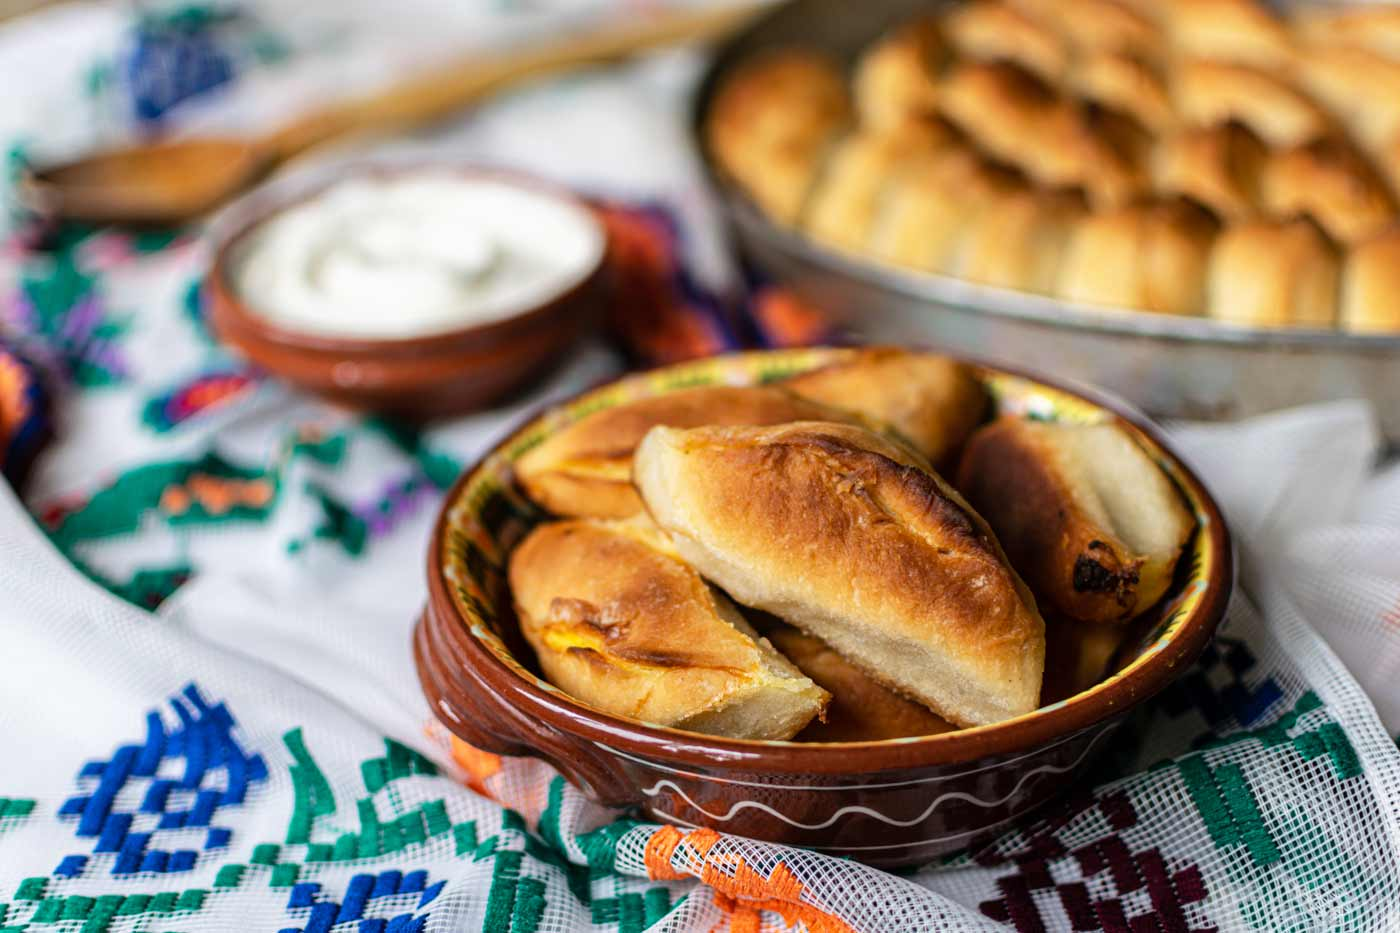 Meat hand pies in bowl with yoghurt and tray in background